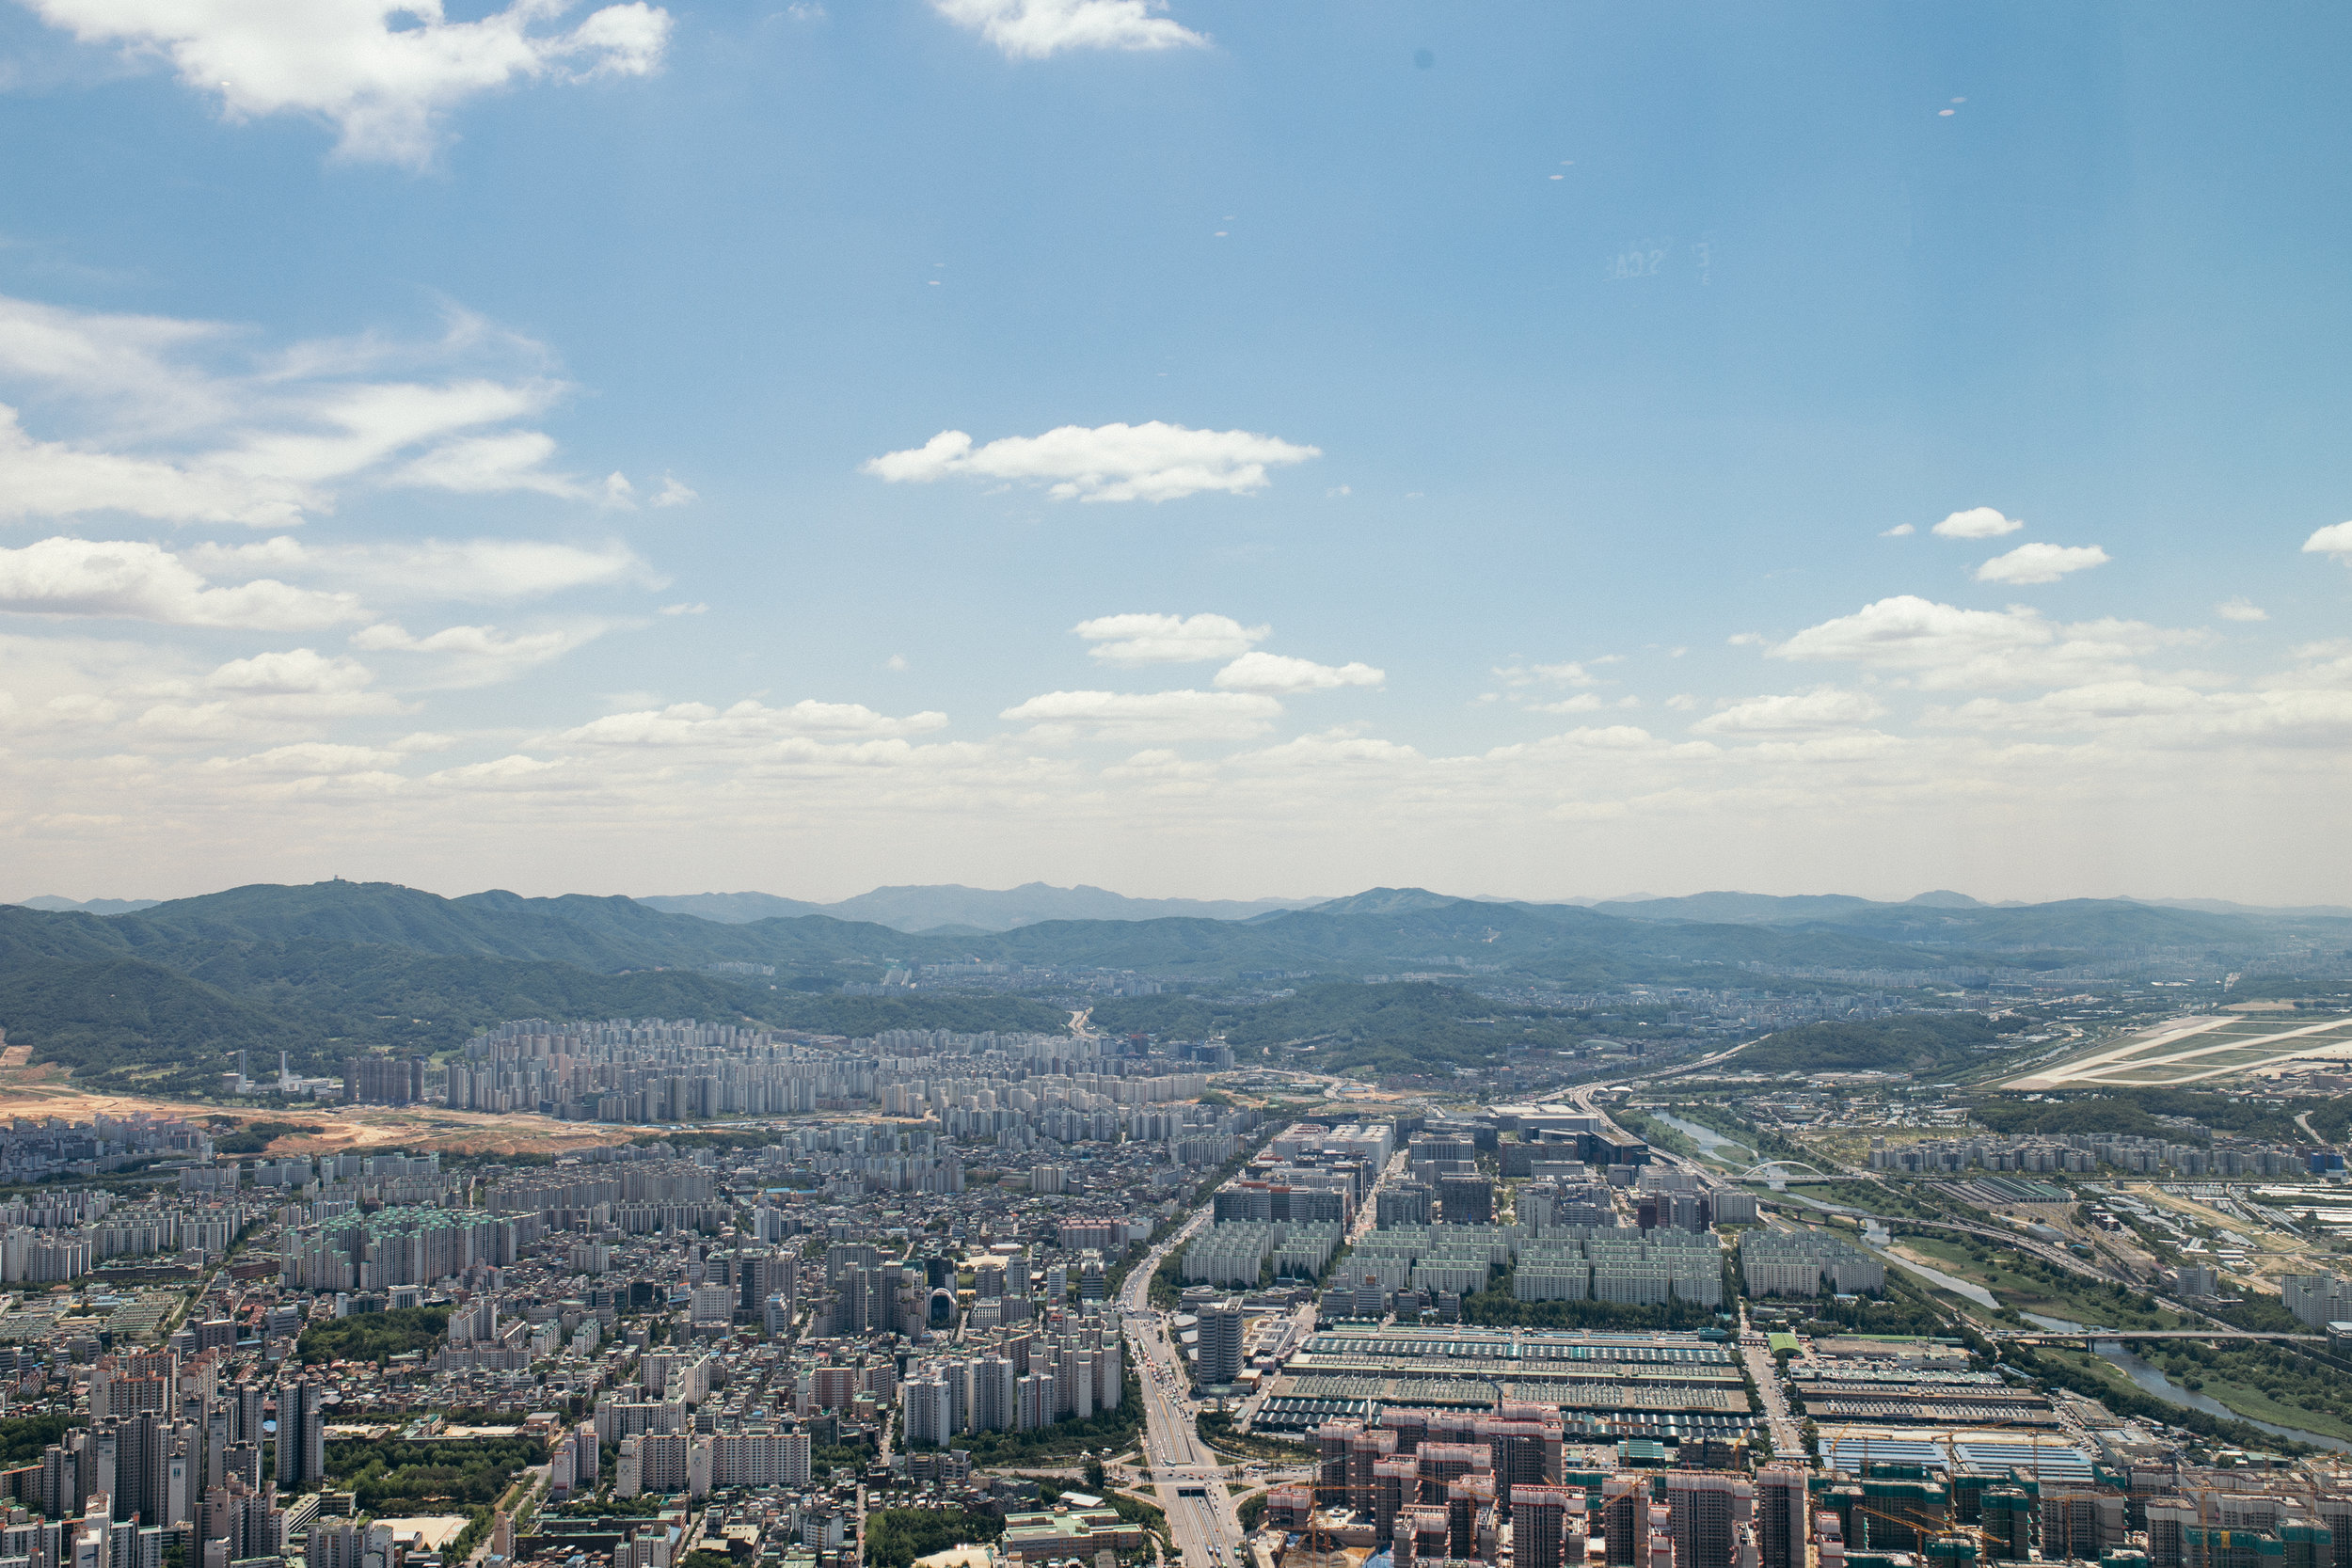 Korea remains the same culturally, but it seems they are trying to bring the history into the modern world.